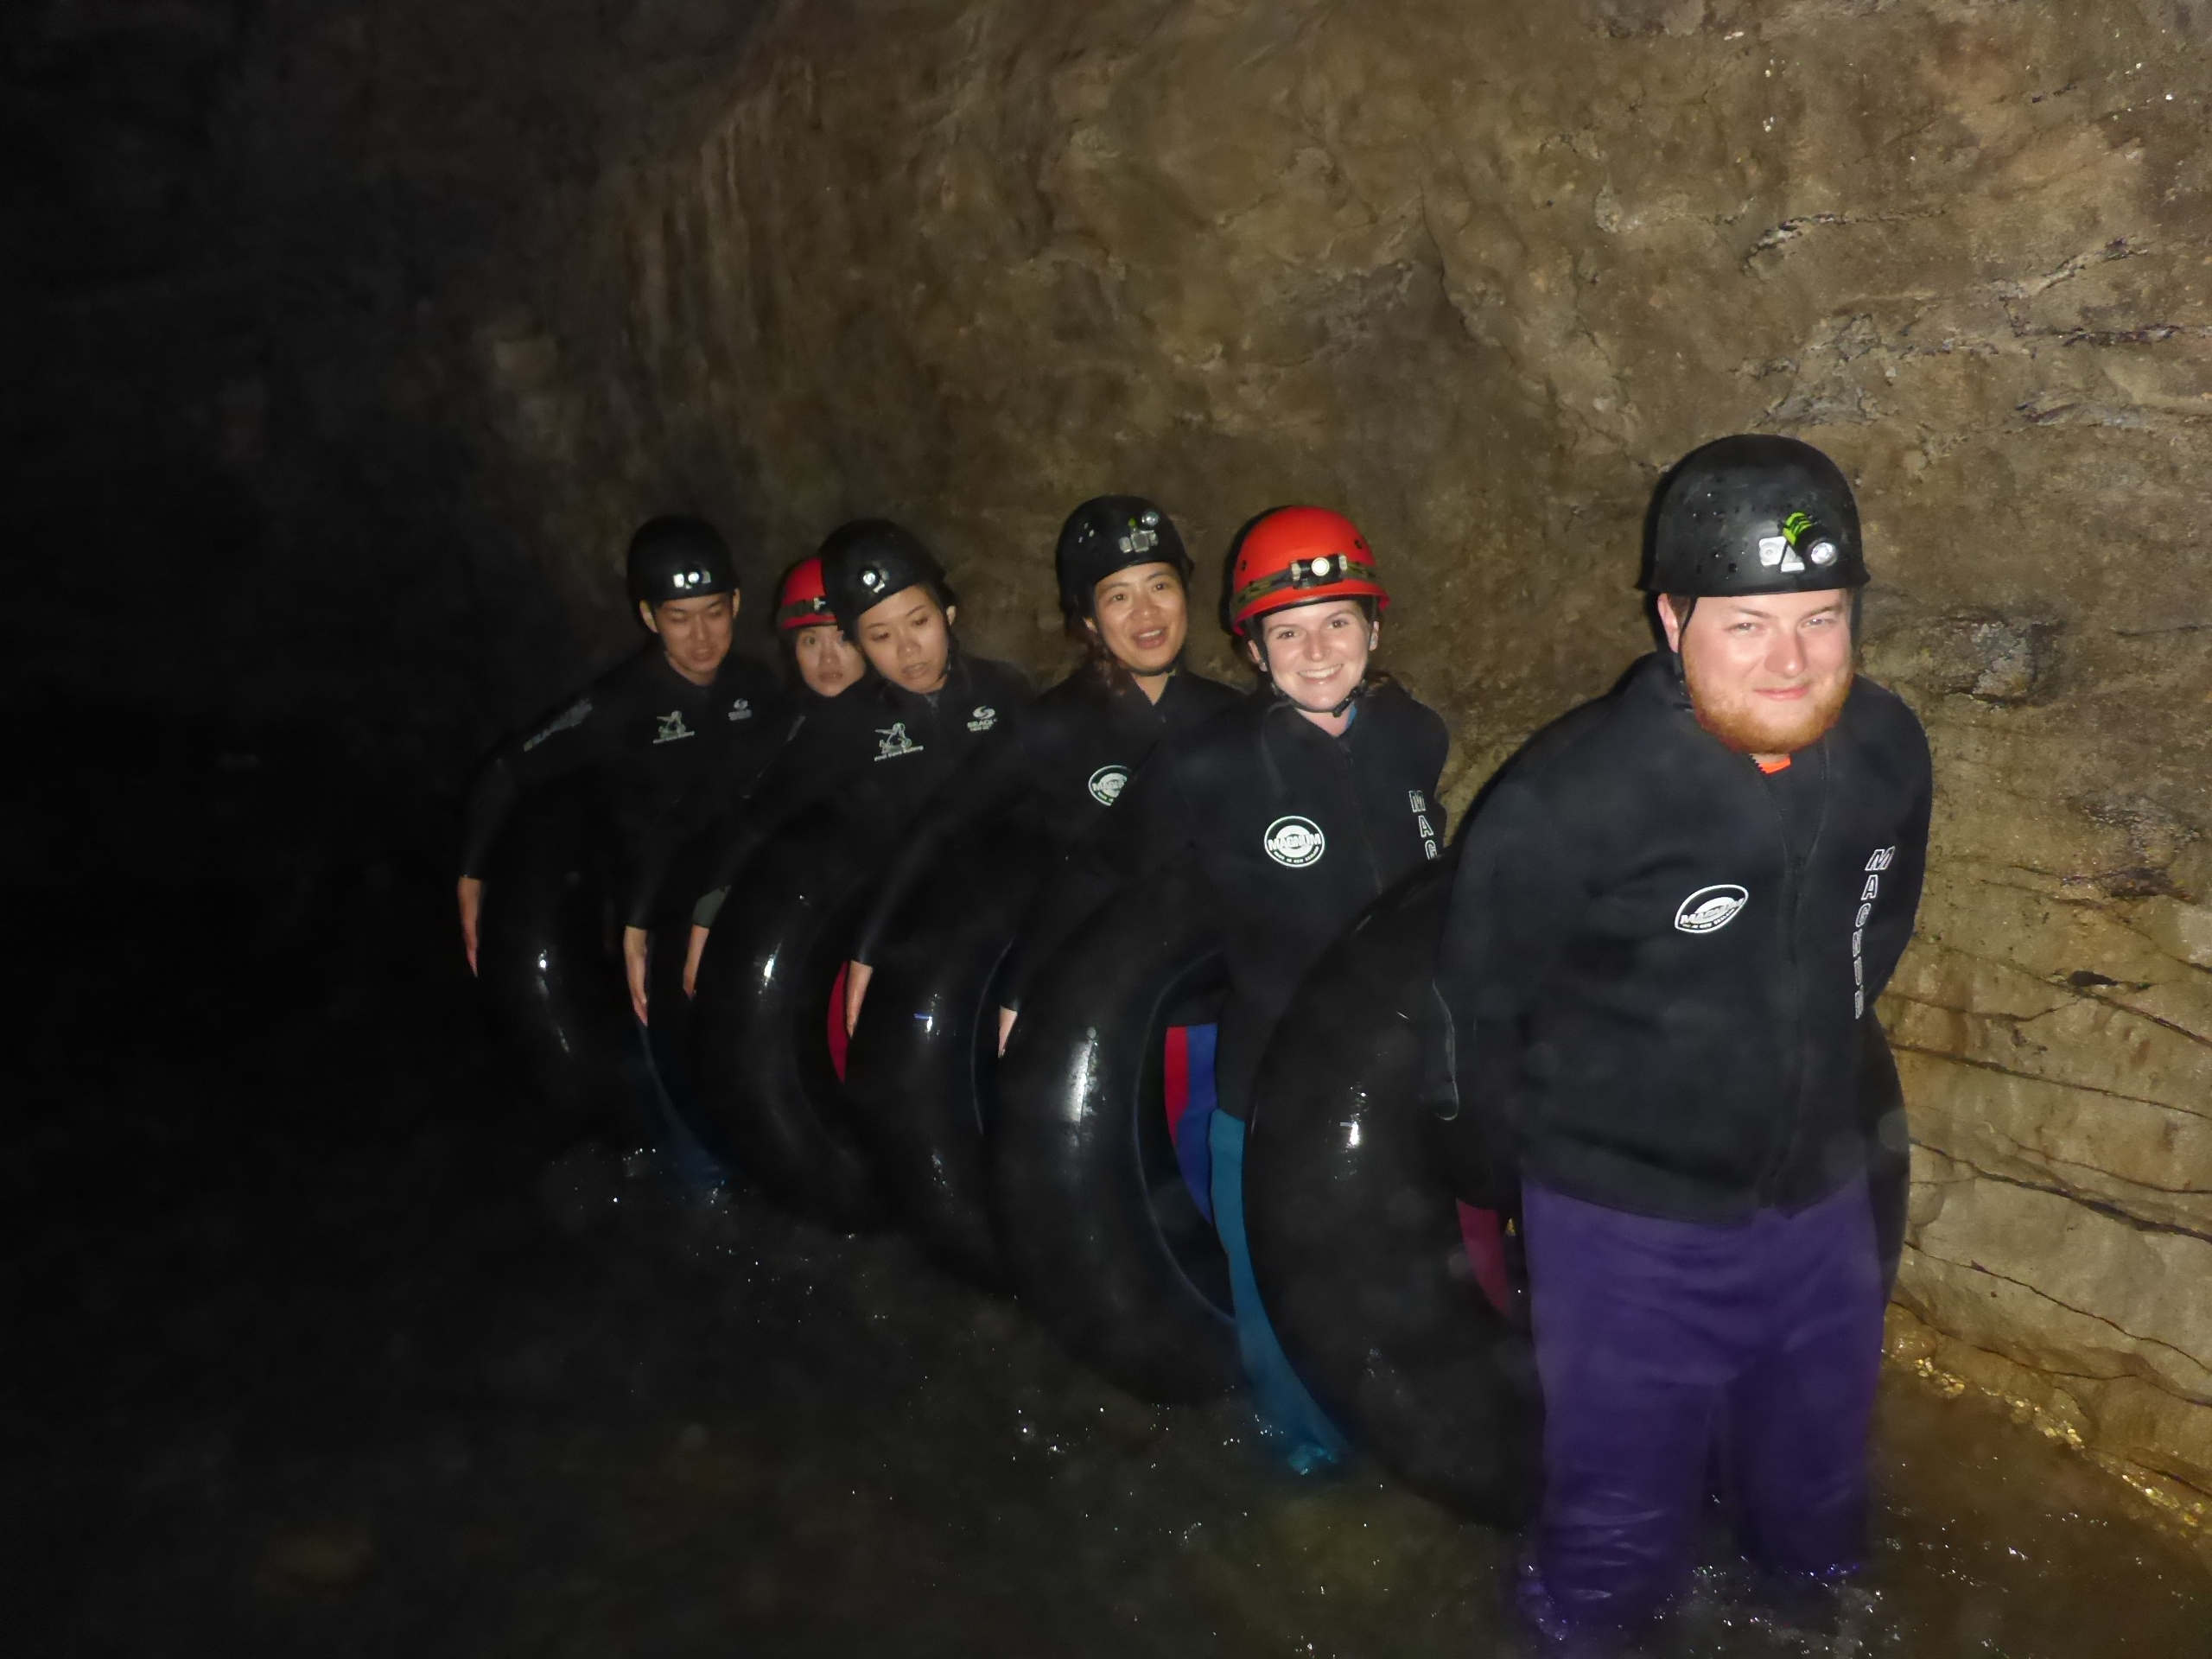 group-of-people-in-glow-worm-caves-in-new-zealand